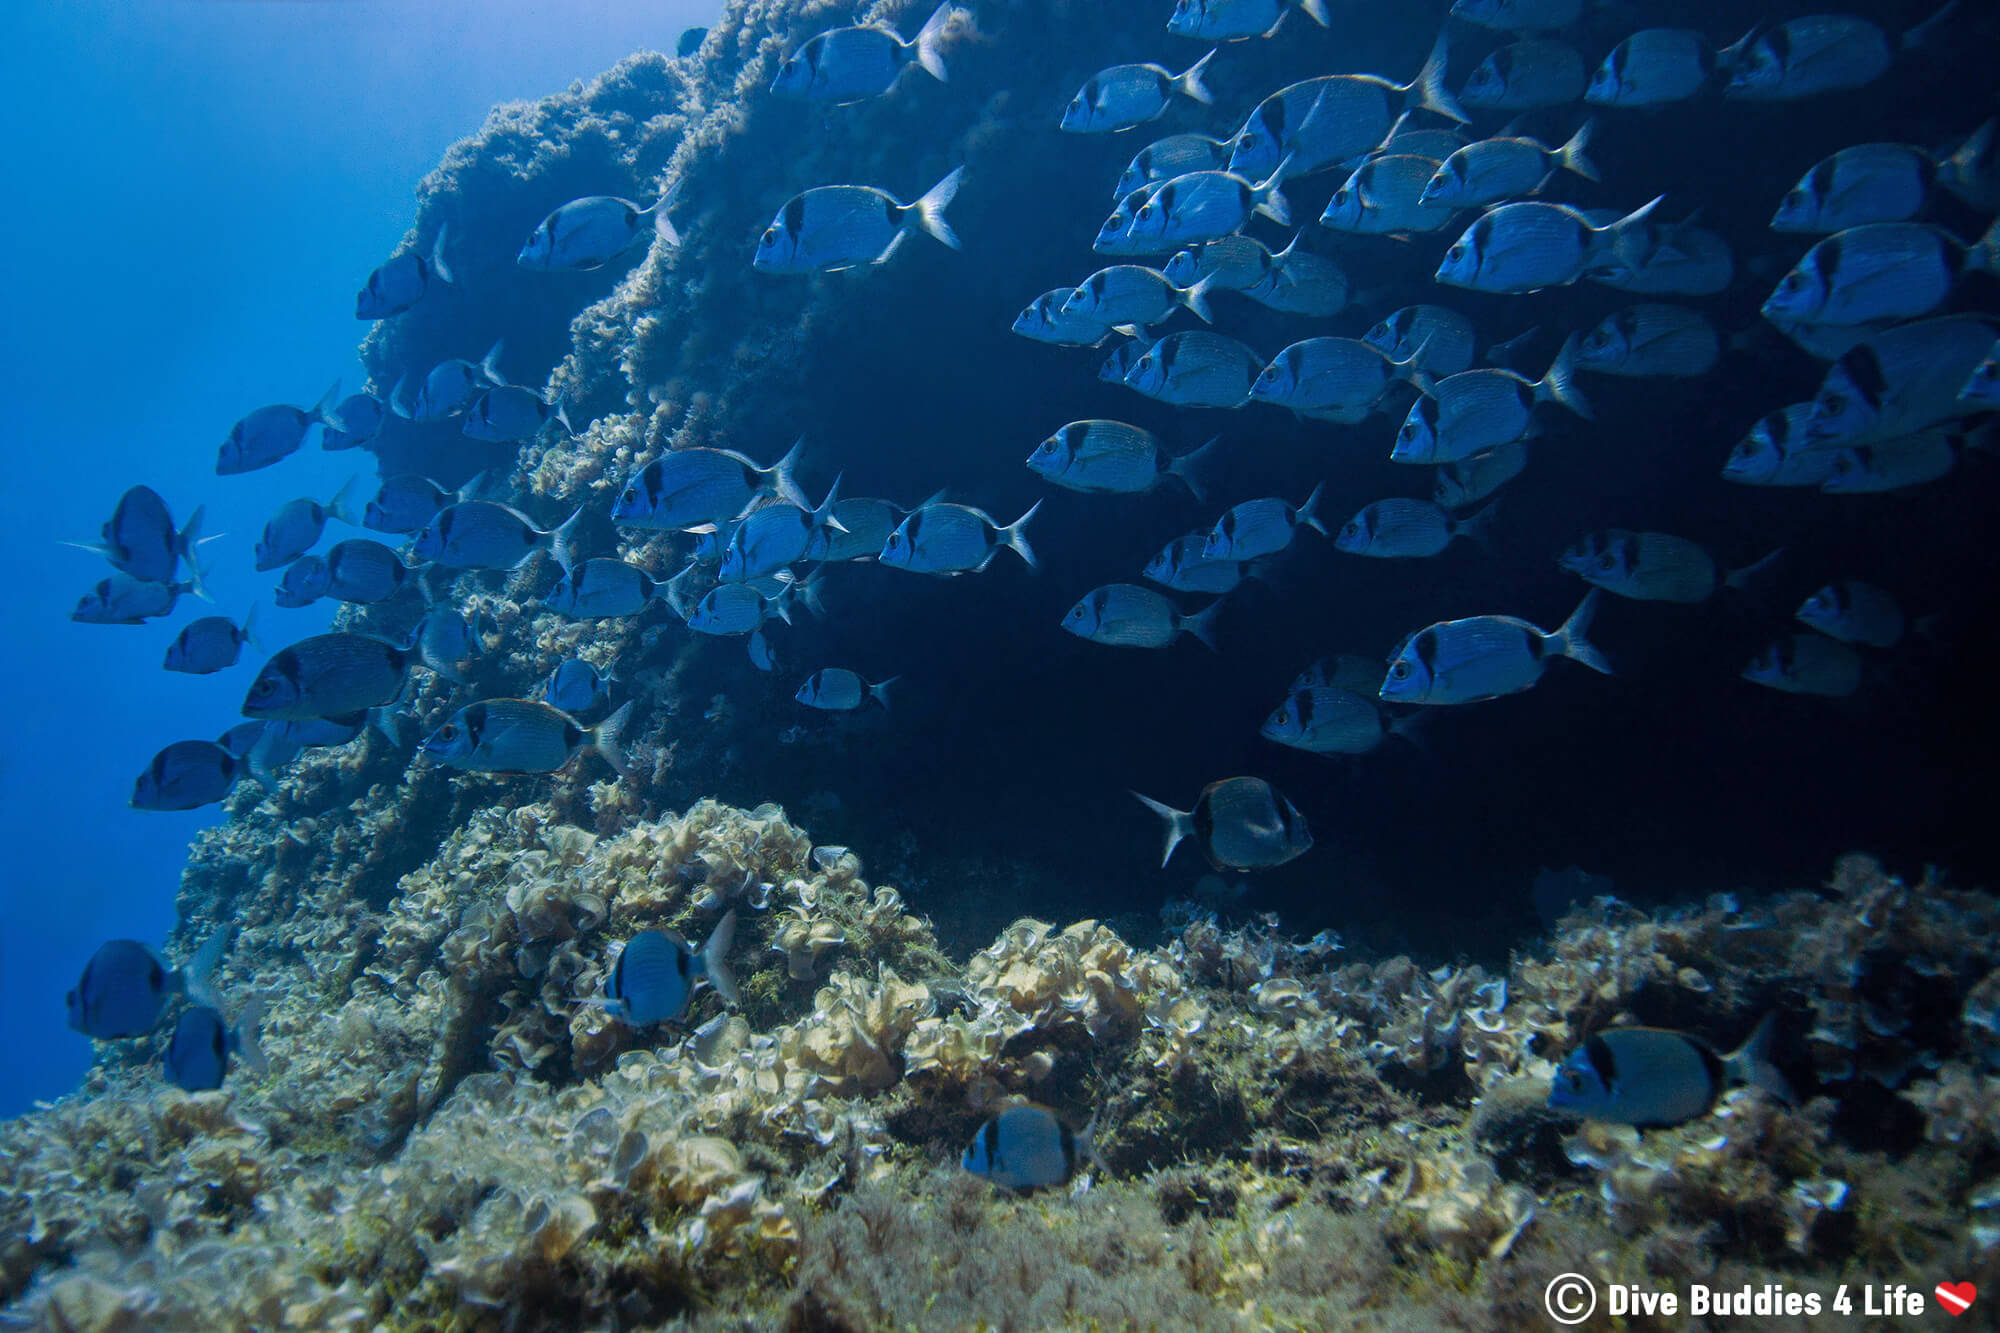 A School Of Sea Bream Spotted While Diving In Italy